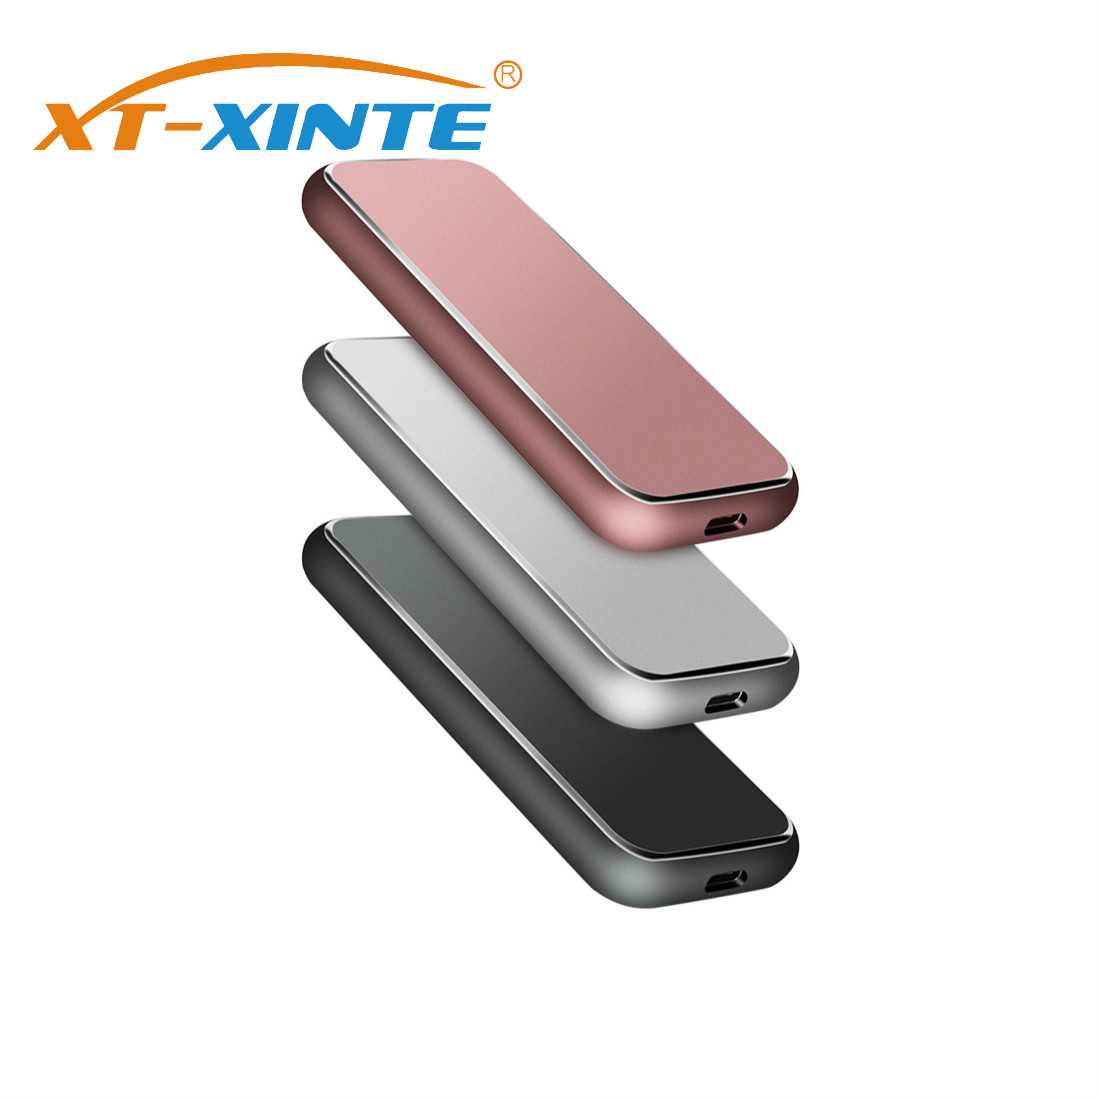 XT-XINTE NGFF M.2 SATA SSD To USB3.1 10Gbps Hard Disk Box Adapter Card External Drive Enclosure For Type-C 2230 2242 2260 2280